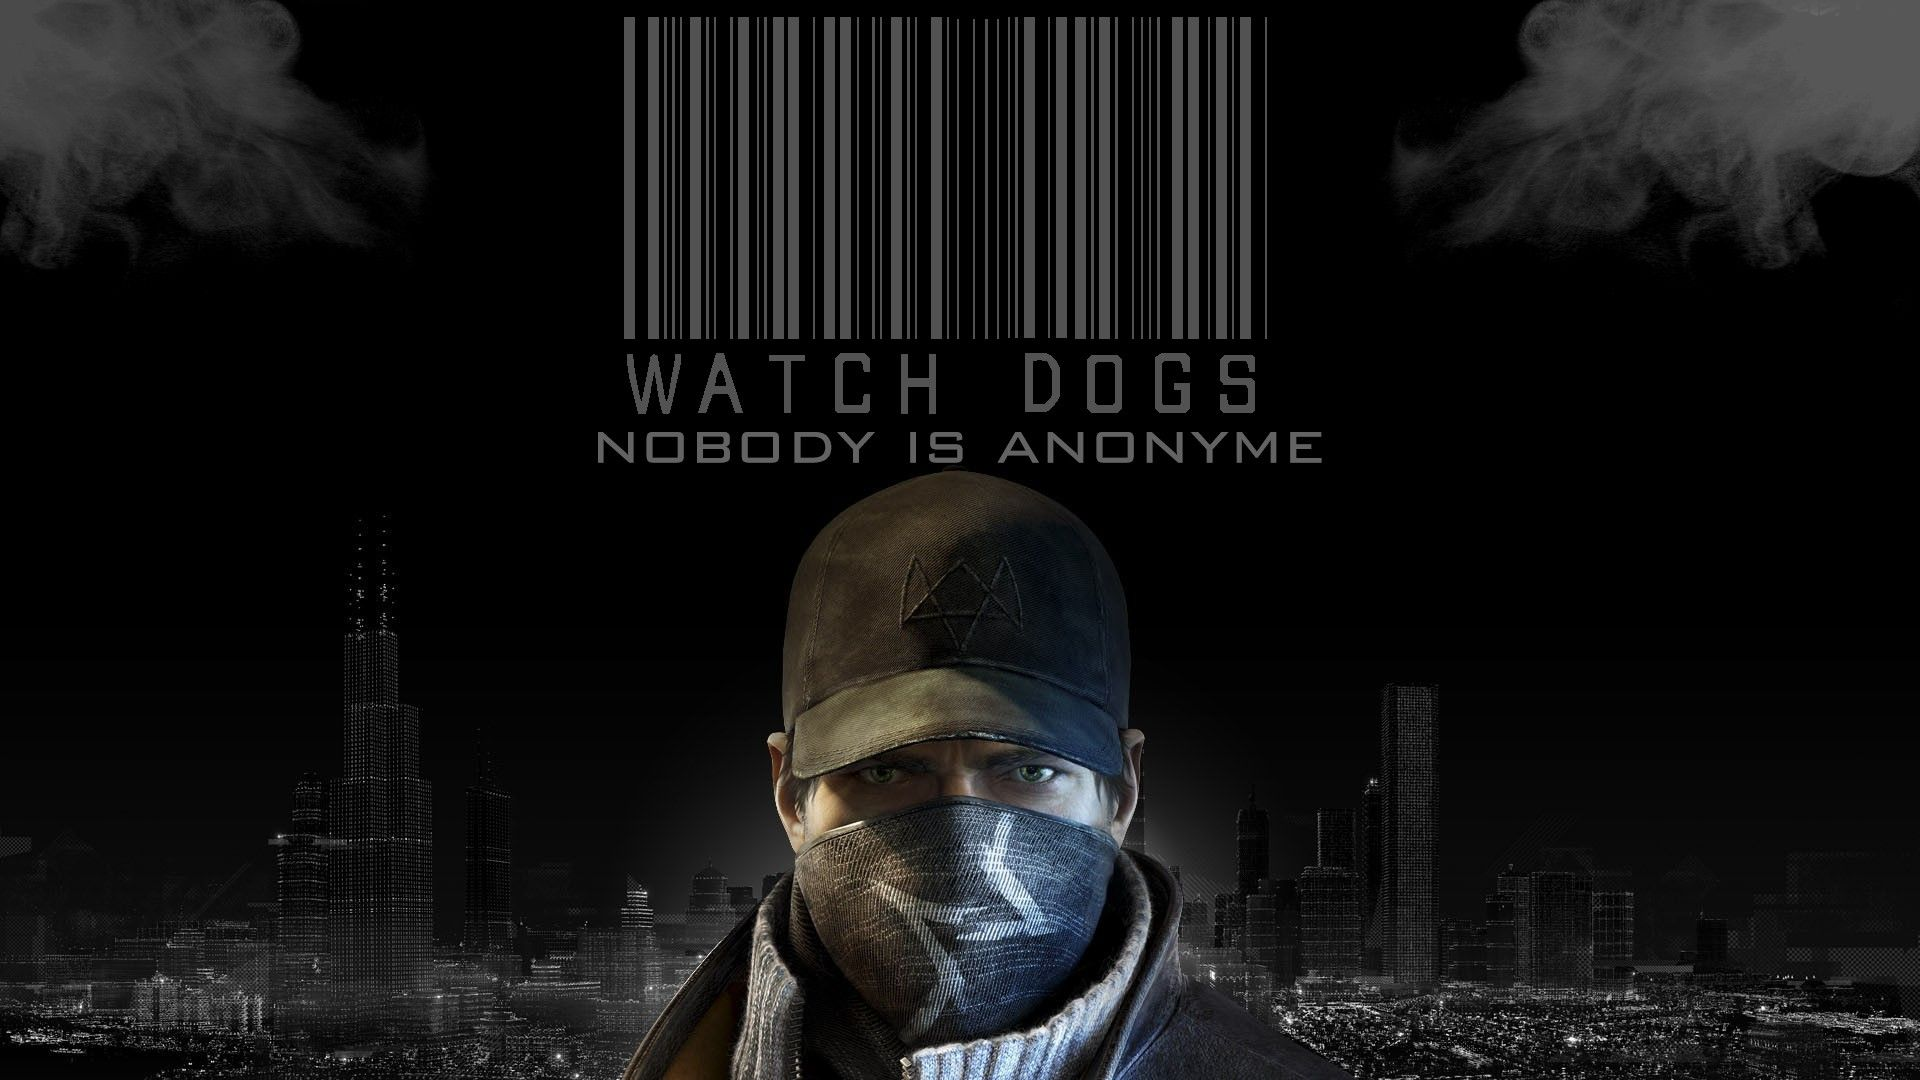 Watchdog Wallpaper Hd Resolution Is Cool Wallpapers